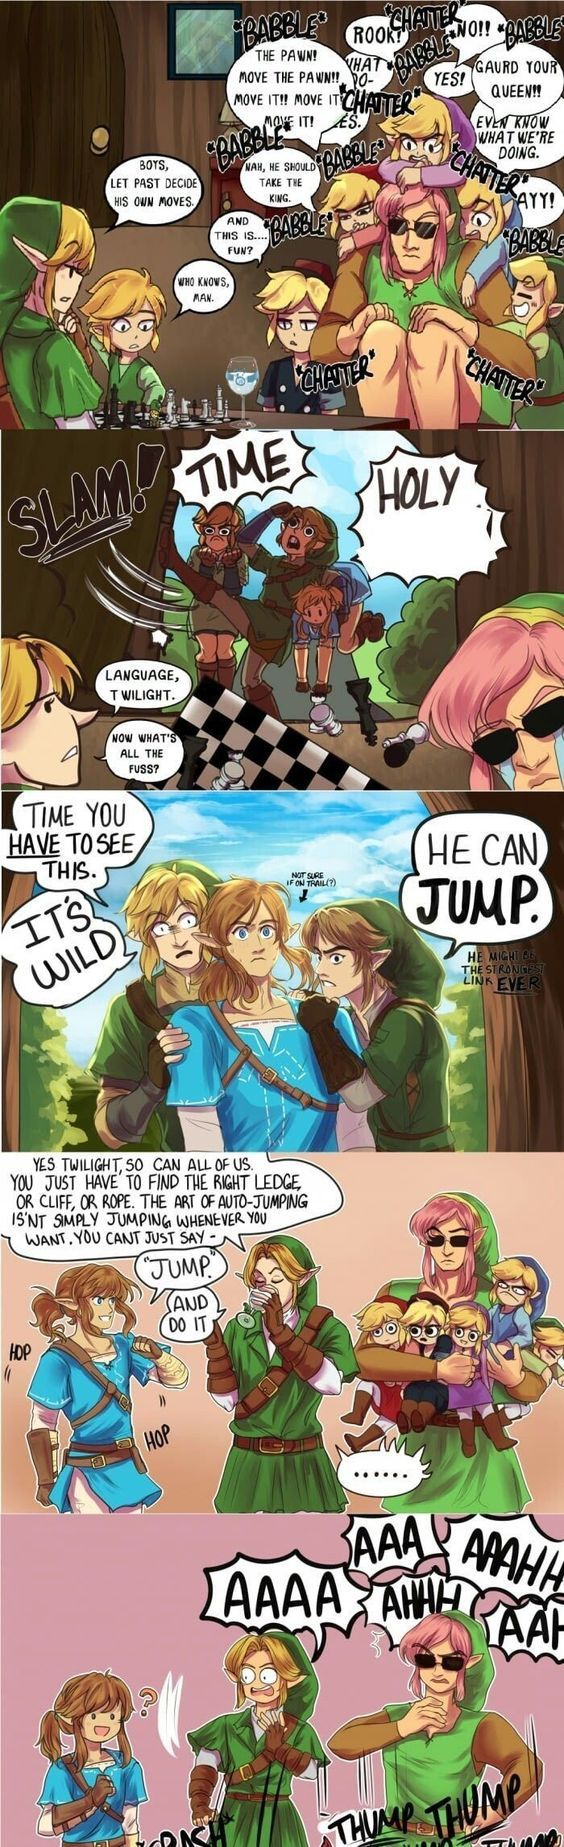 Pin by TropicalLeopard on Anime funny in 2020 Legend of